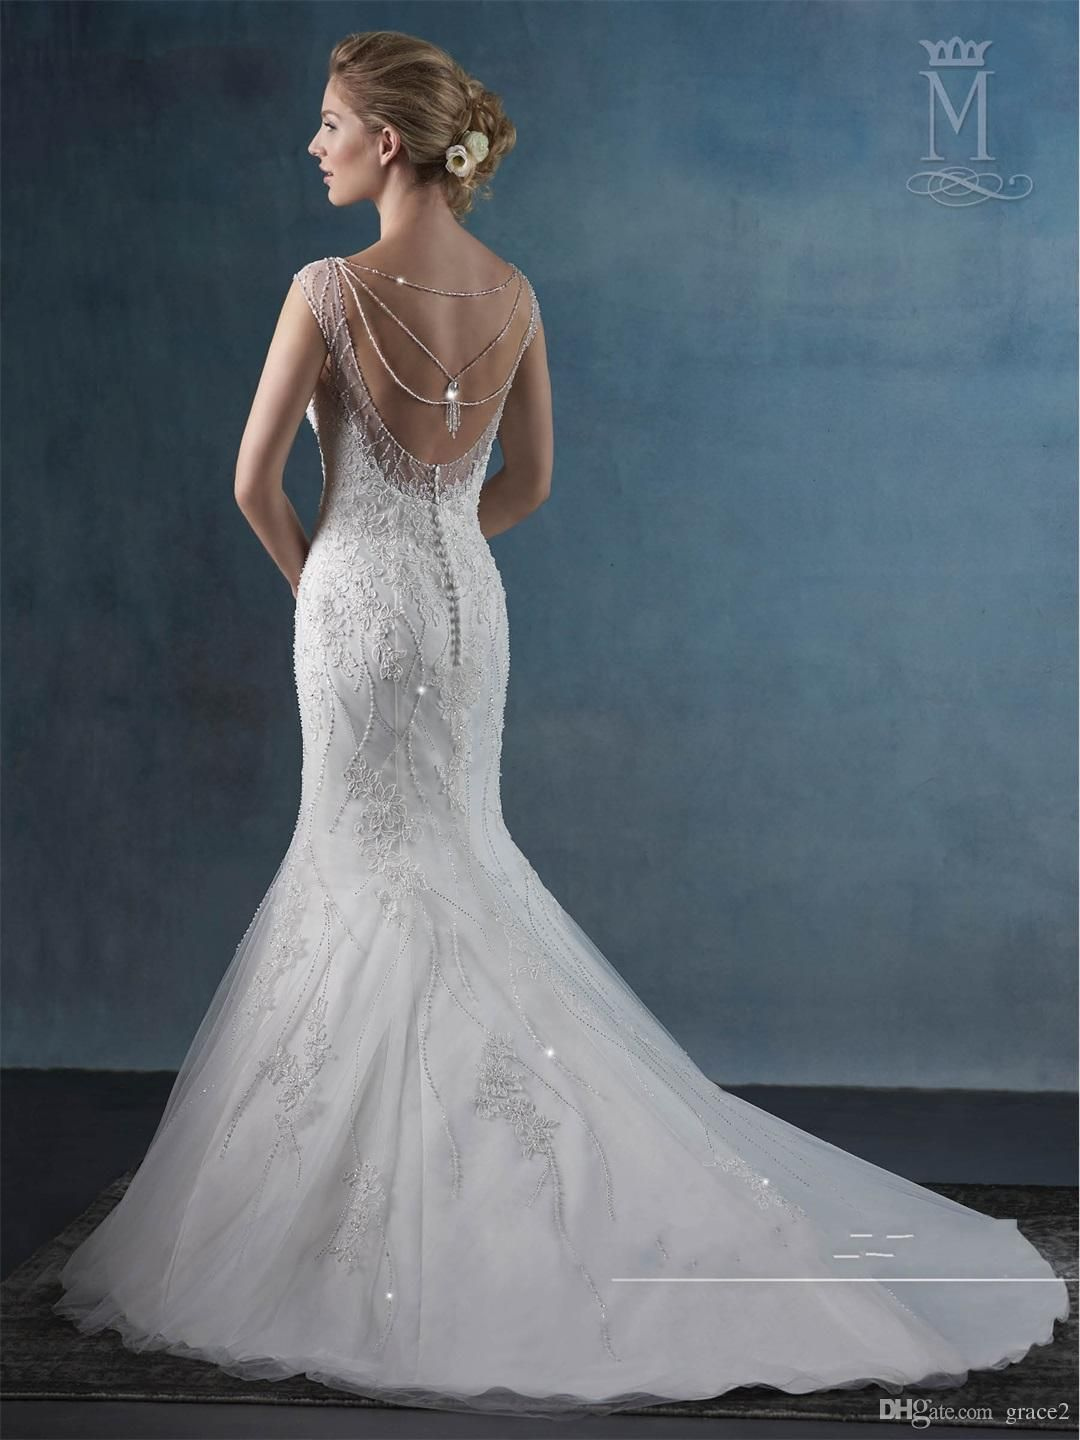 Unique Back Wedding Dresses 2017 Marys Bridal With Sheer Neck And Chapel Train Beading Chain Fit